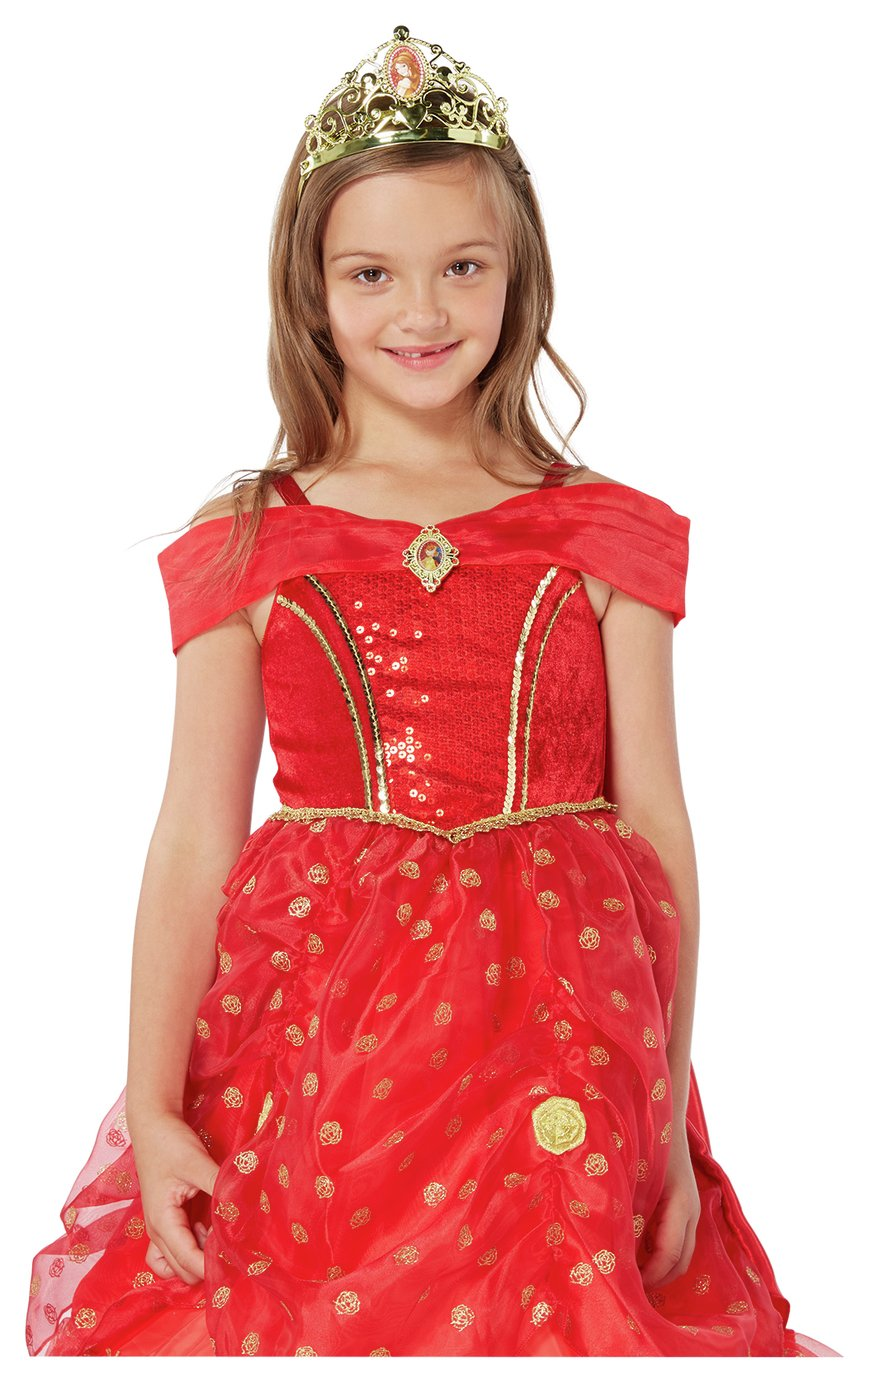 Disney Princess Belle Fancy Dress Costume - 7-8 Years